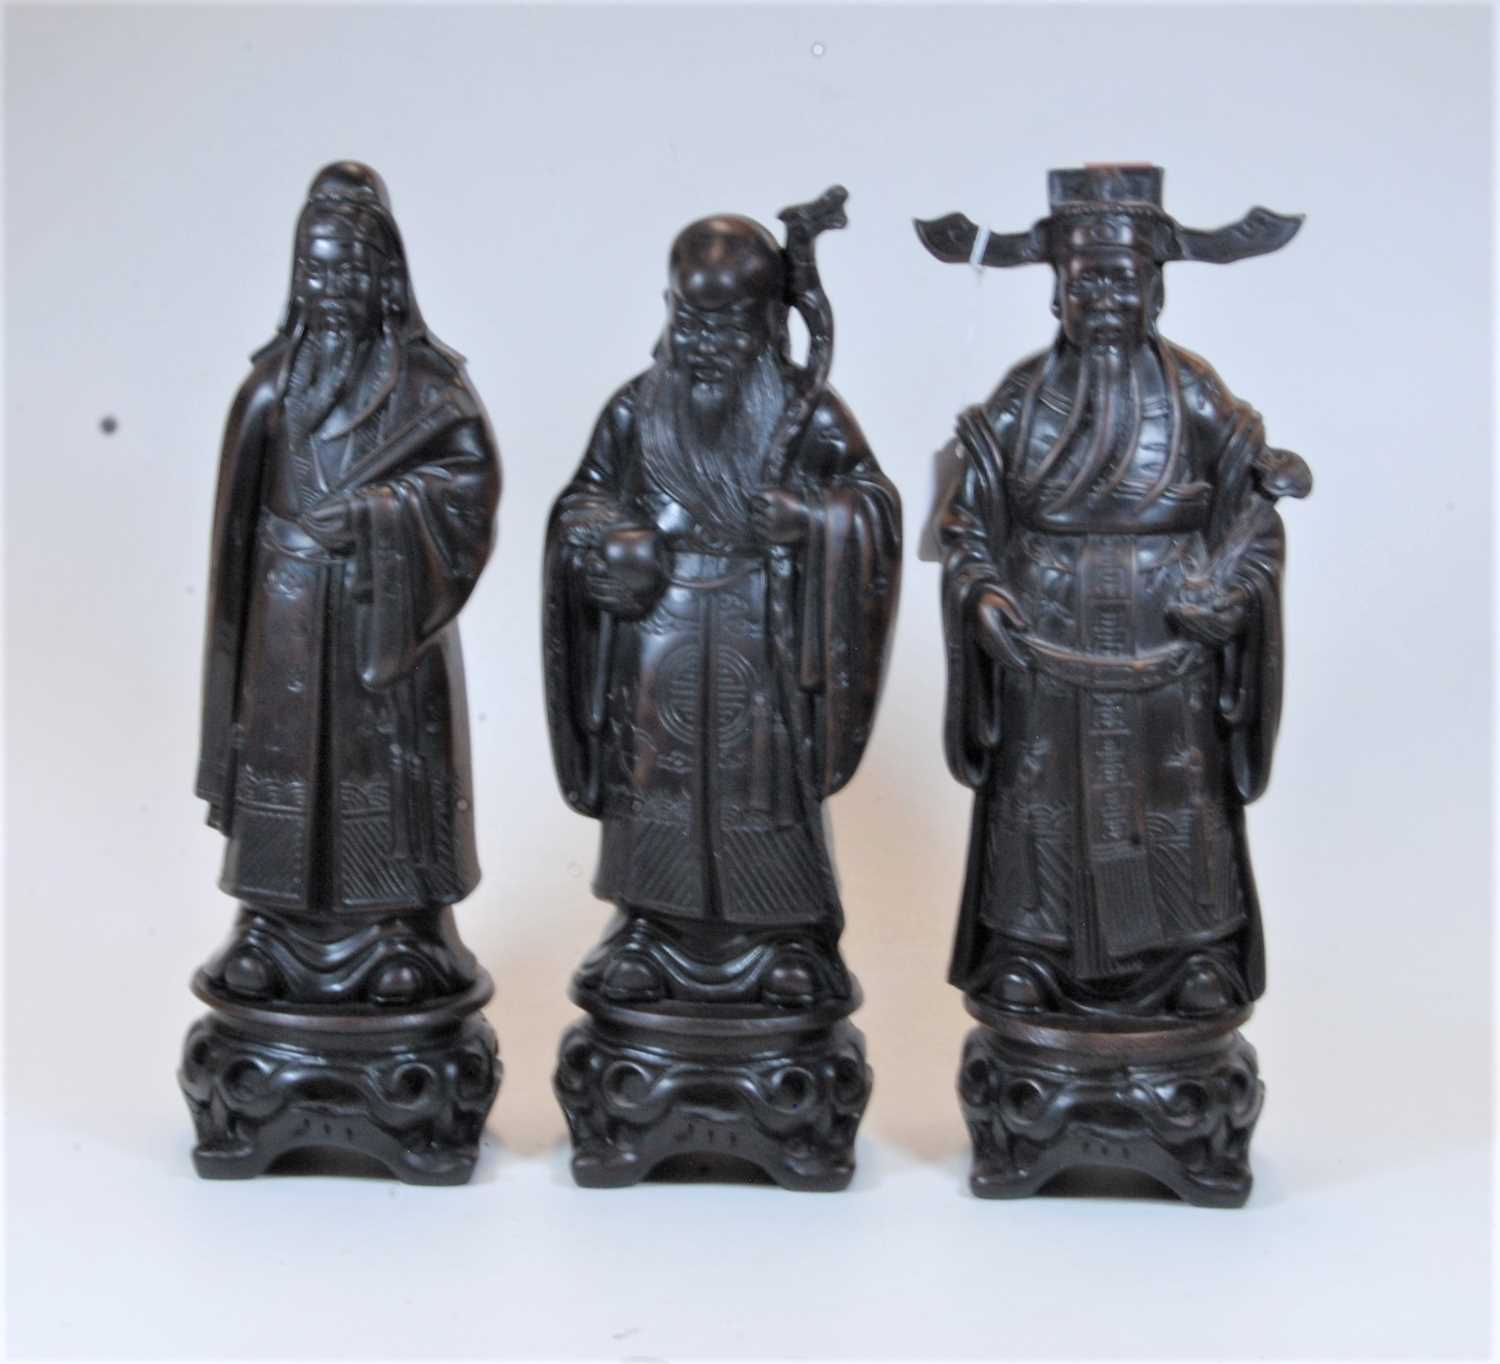 Lot 17 - A set of three modern resin figures of the gods Fu, Lu and Shou, the 3 gods of happiness,